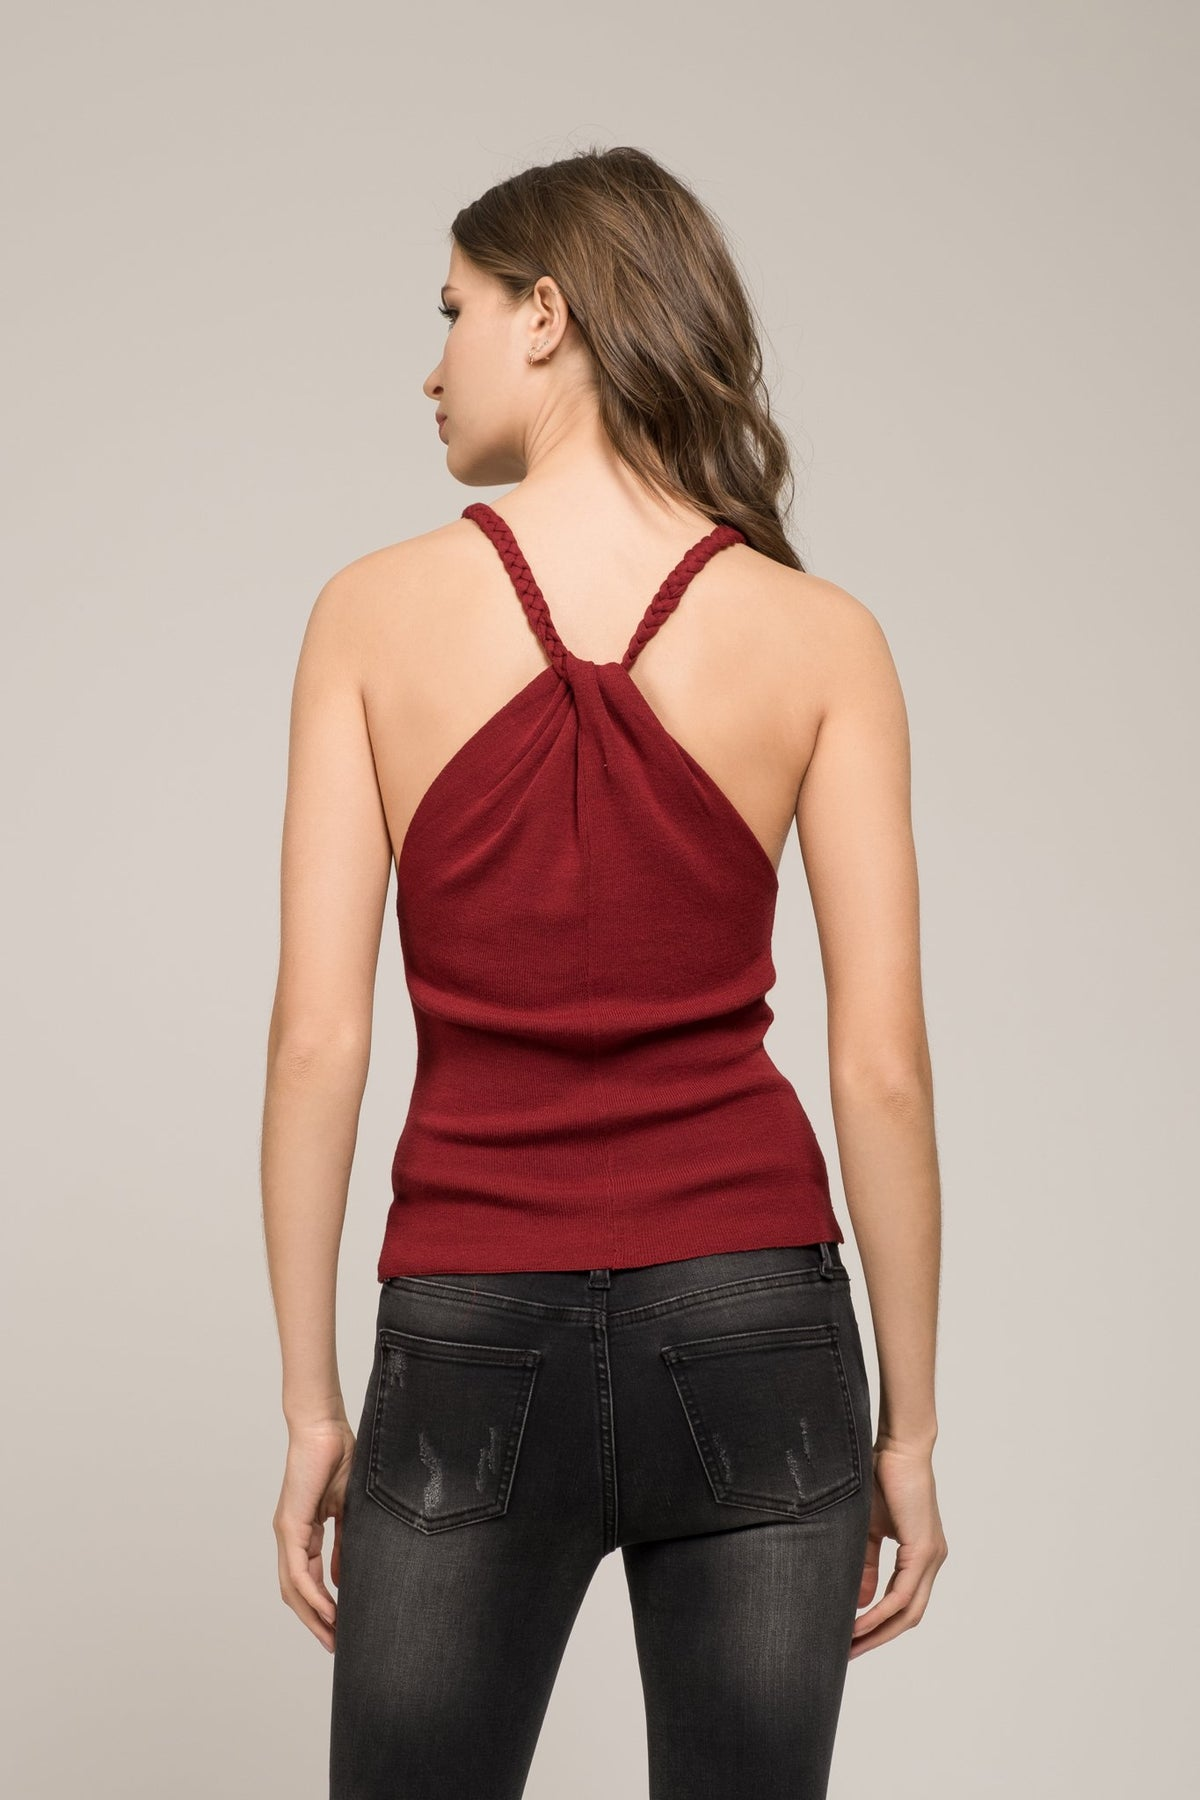 Knit Top with Braided Straps - Refinery